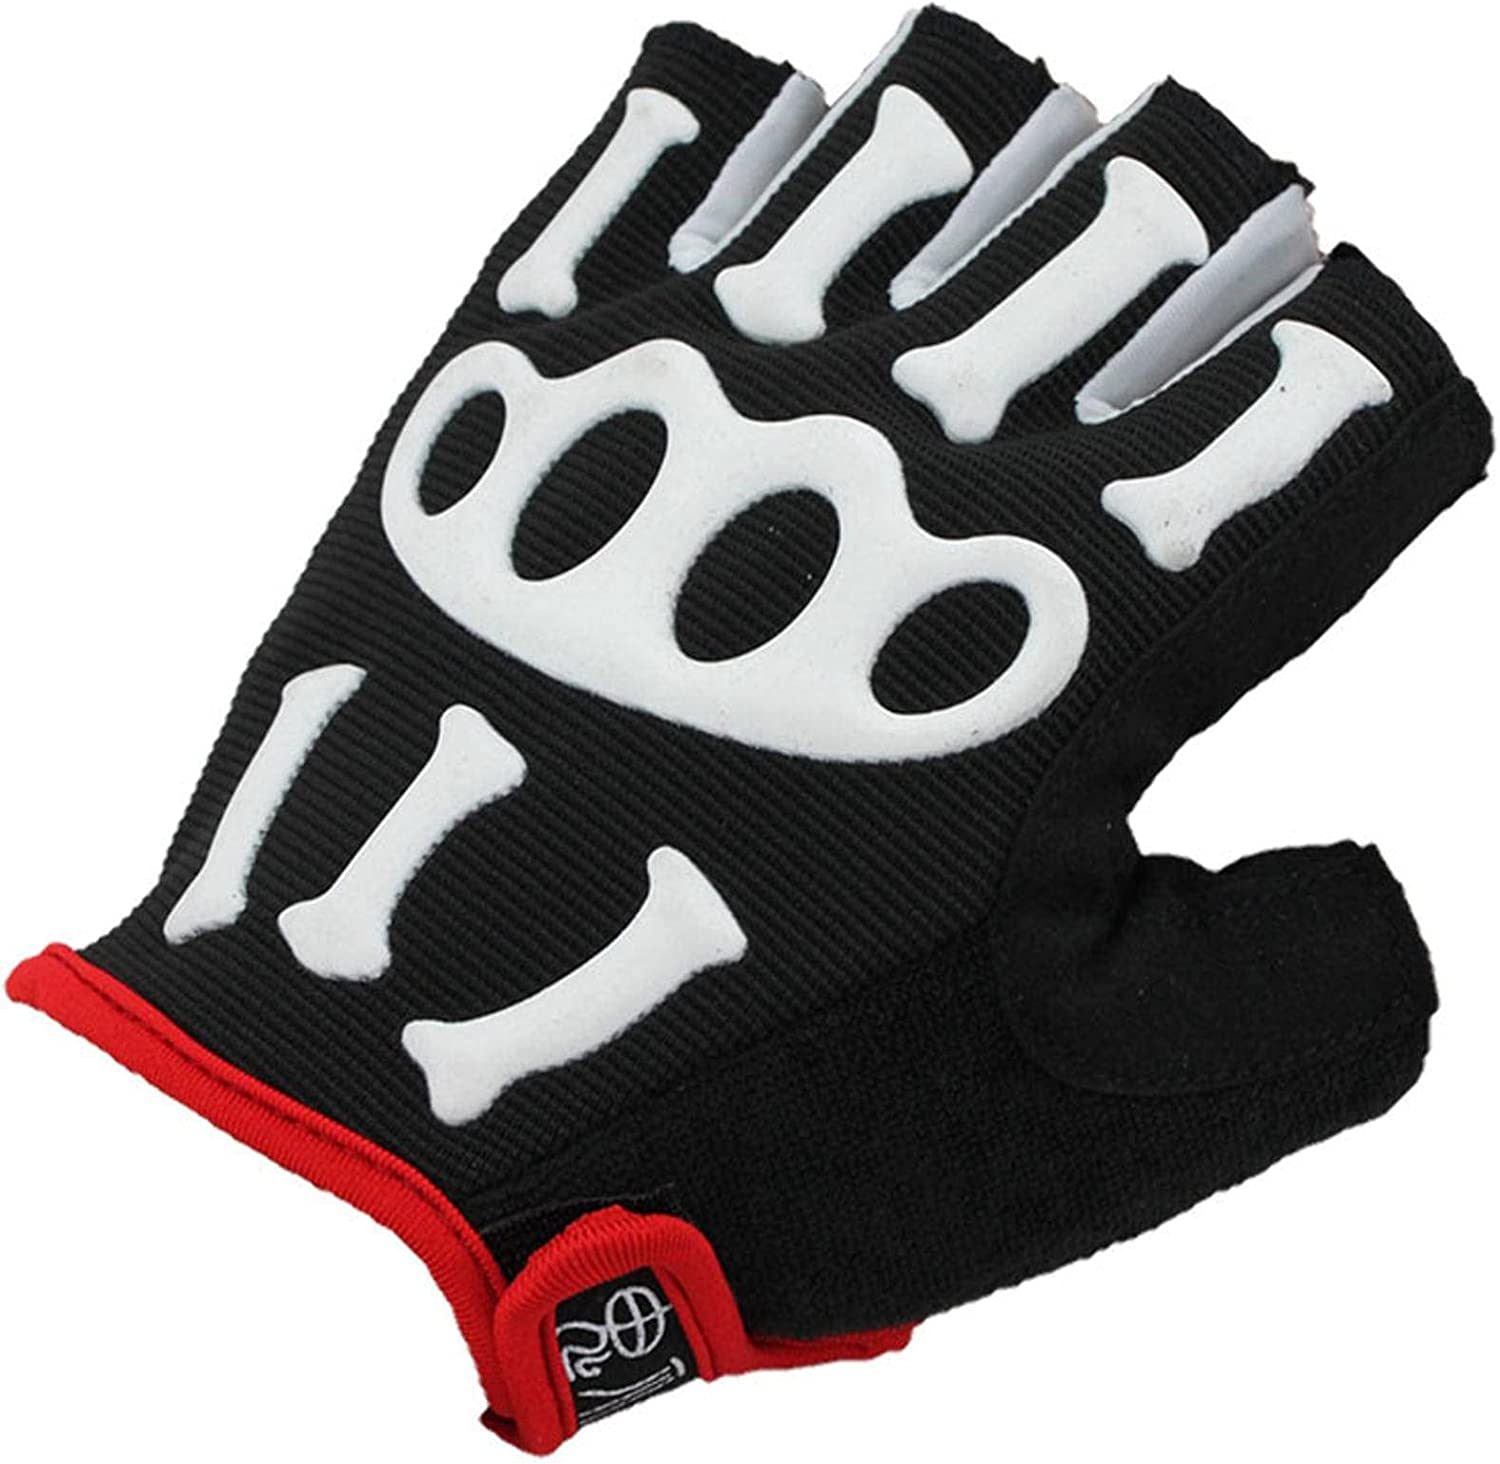 A surprise price is realized N\C Cycling Gloves Non-Slip Exercise Lifting Low price Half-Finger Weight